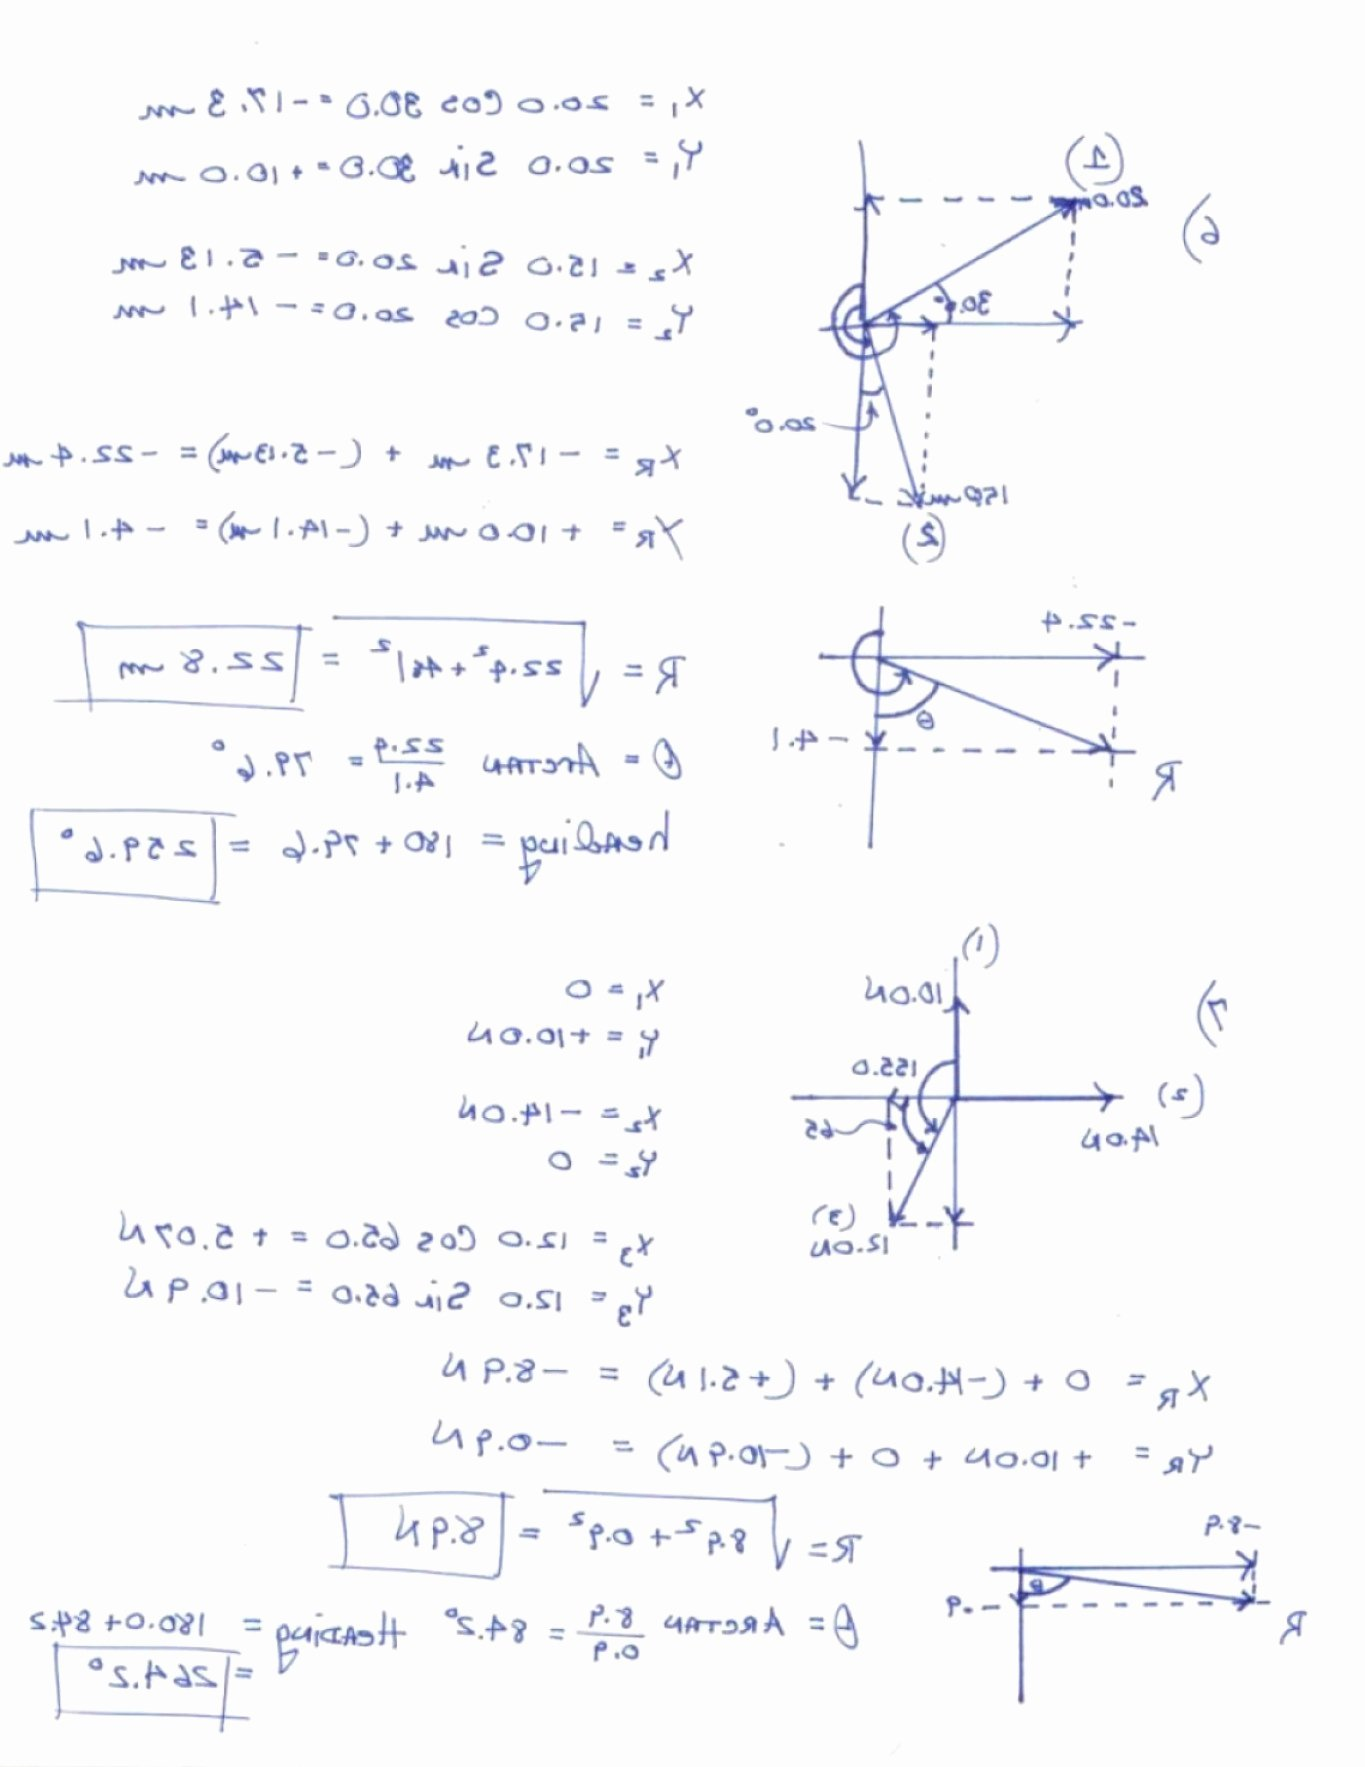 Vector Addition Worksheet with Answers Luxury Adding Vectors In Physics Worksheets